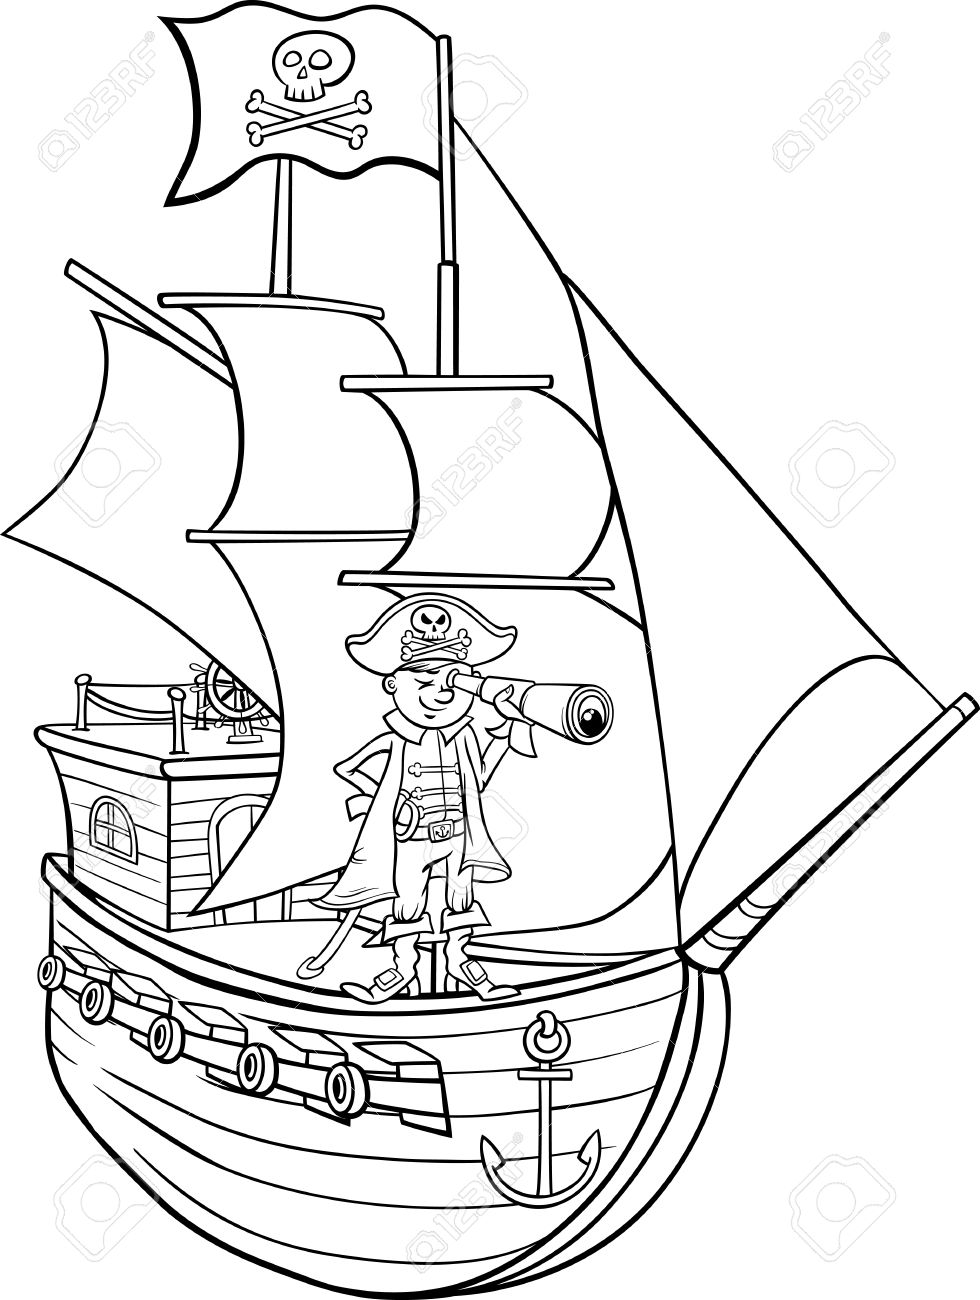 Black And White Cartoon Illustration Of Funny Pirate Captain With Spyglass Ship Jolly Roger